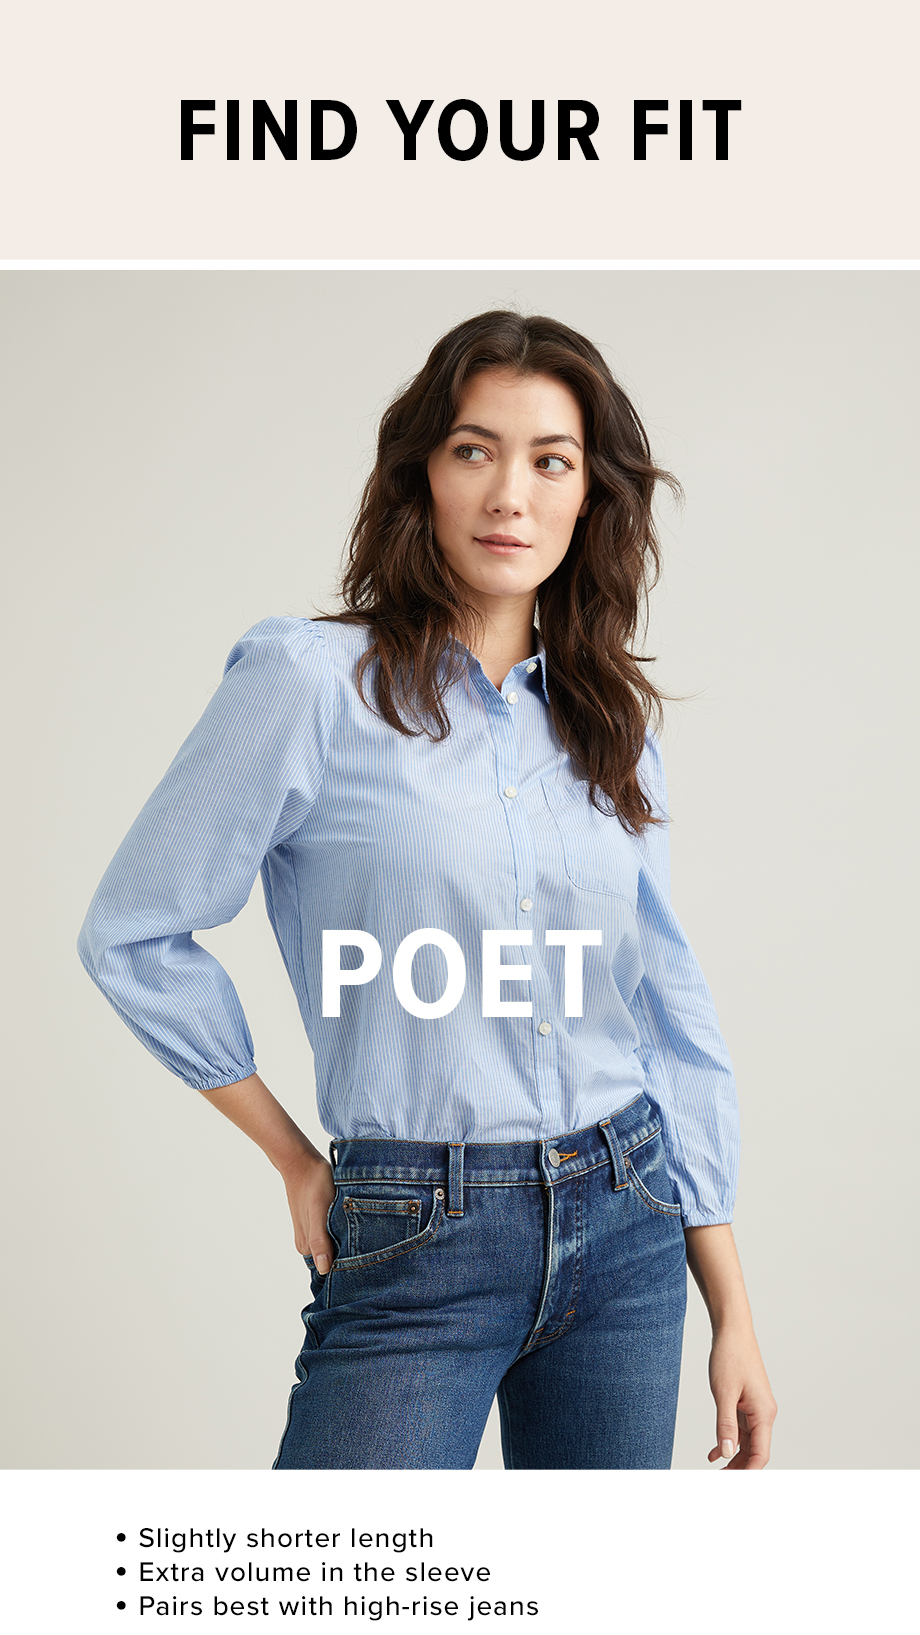 poet fit shirt